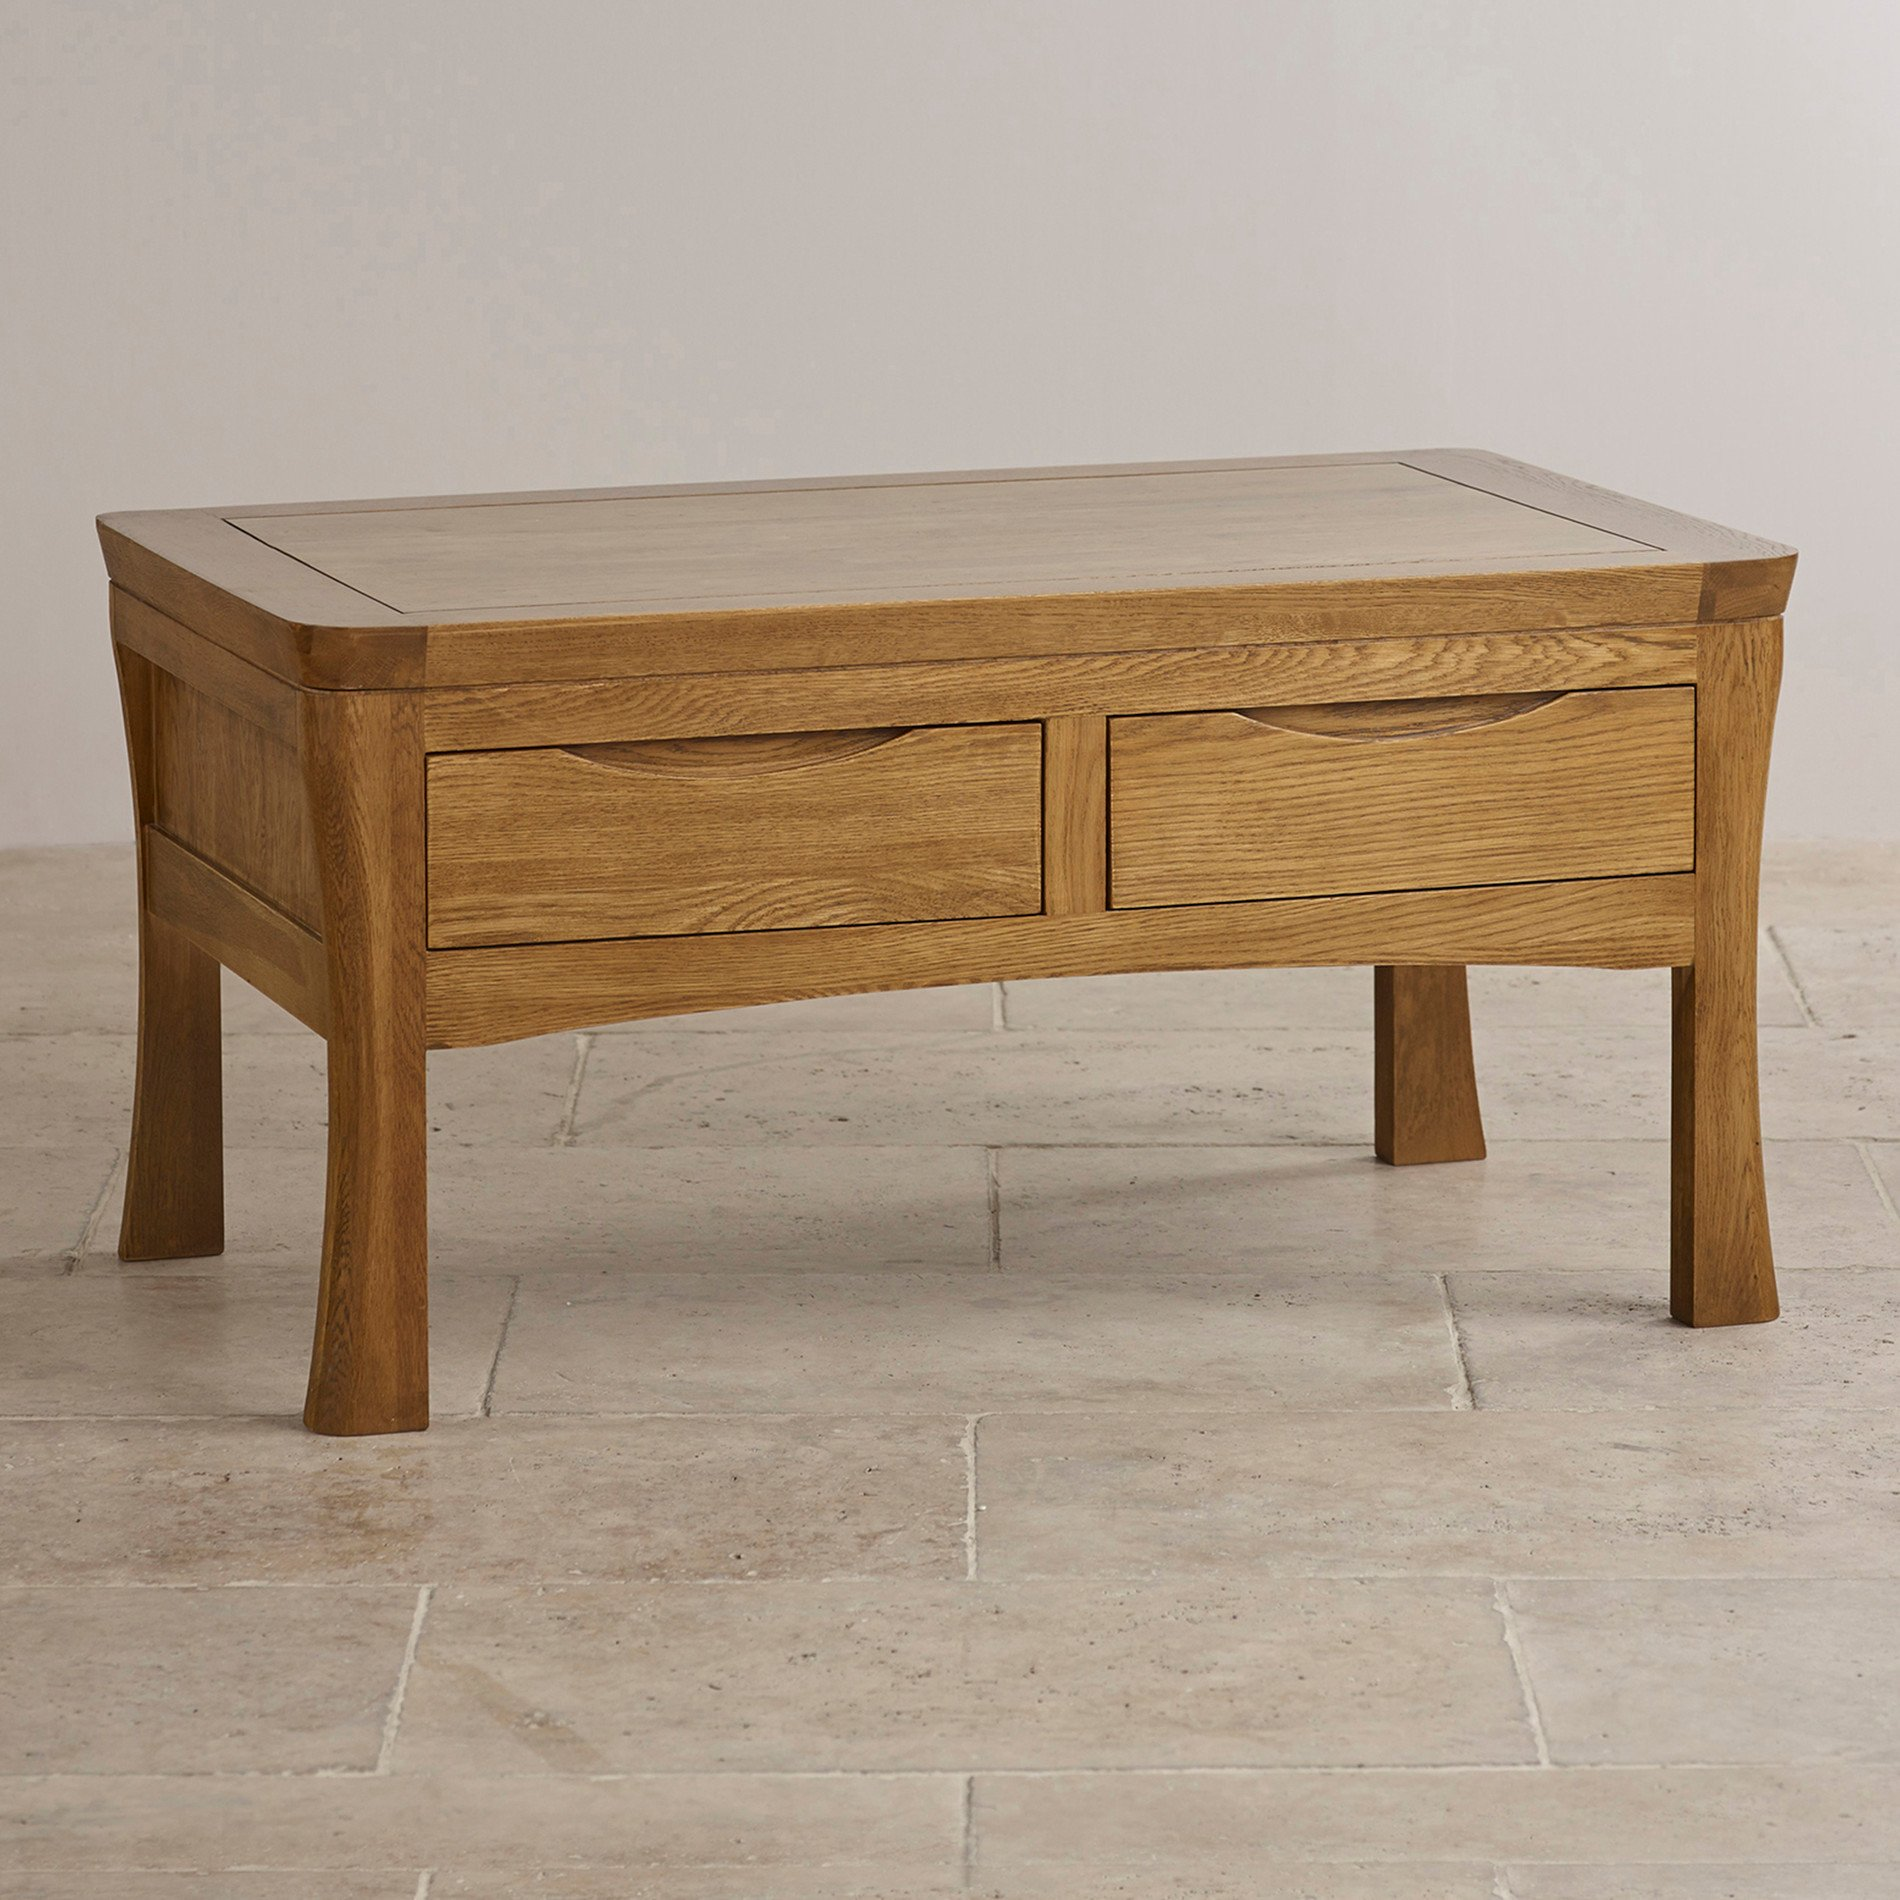 Coffee Table With Drawers: Orrick 4 Drawer Coffee Table In Rustic Oak